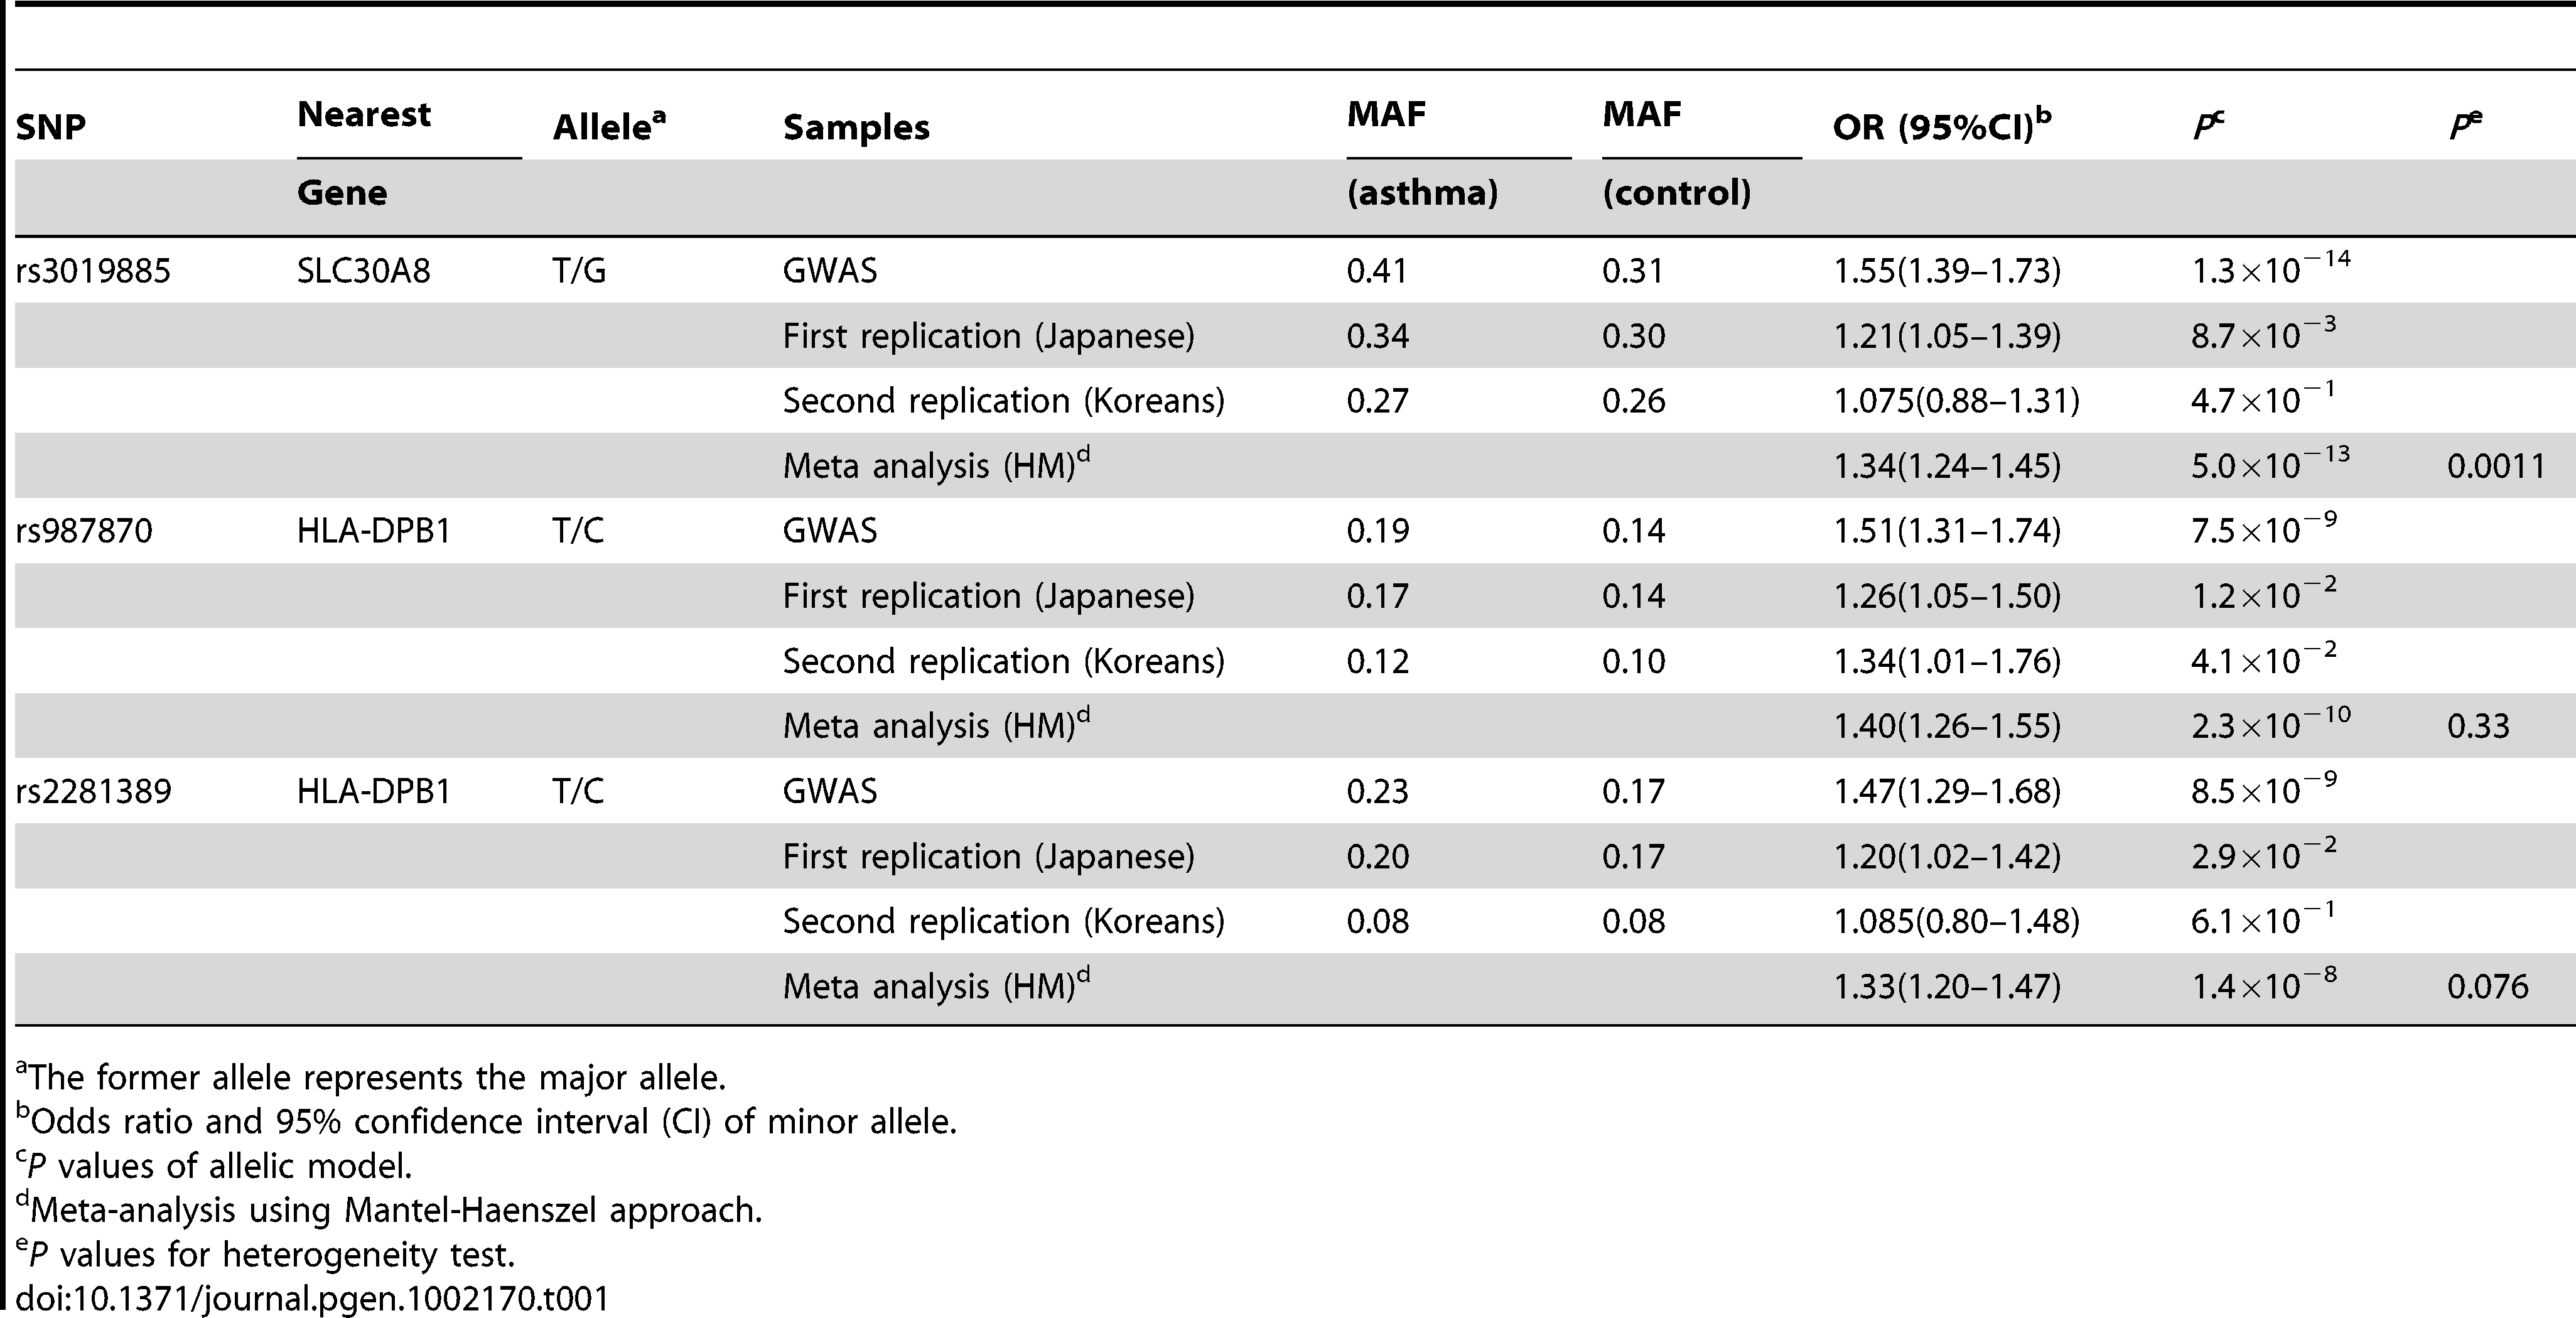 Results of GWAS and replication studies for 4 SNPs.